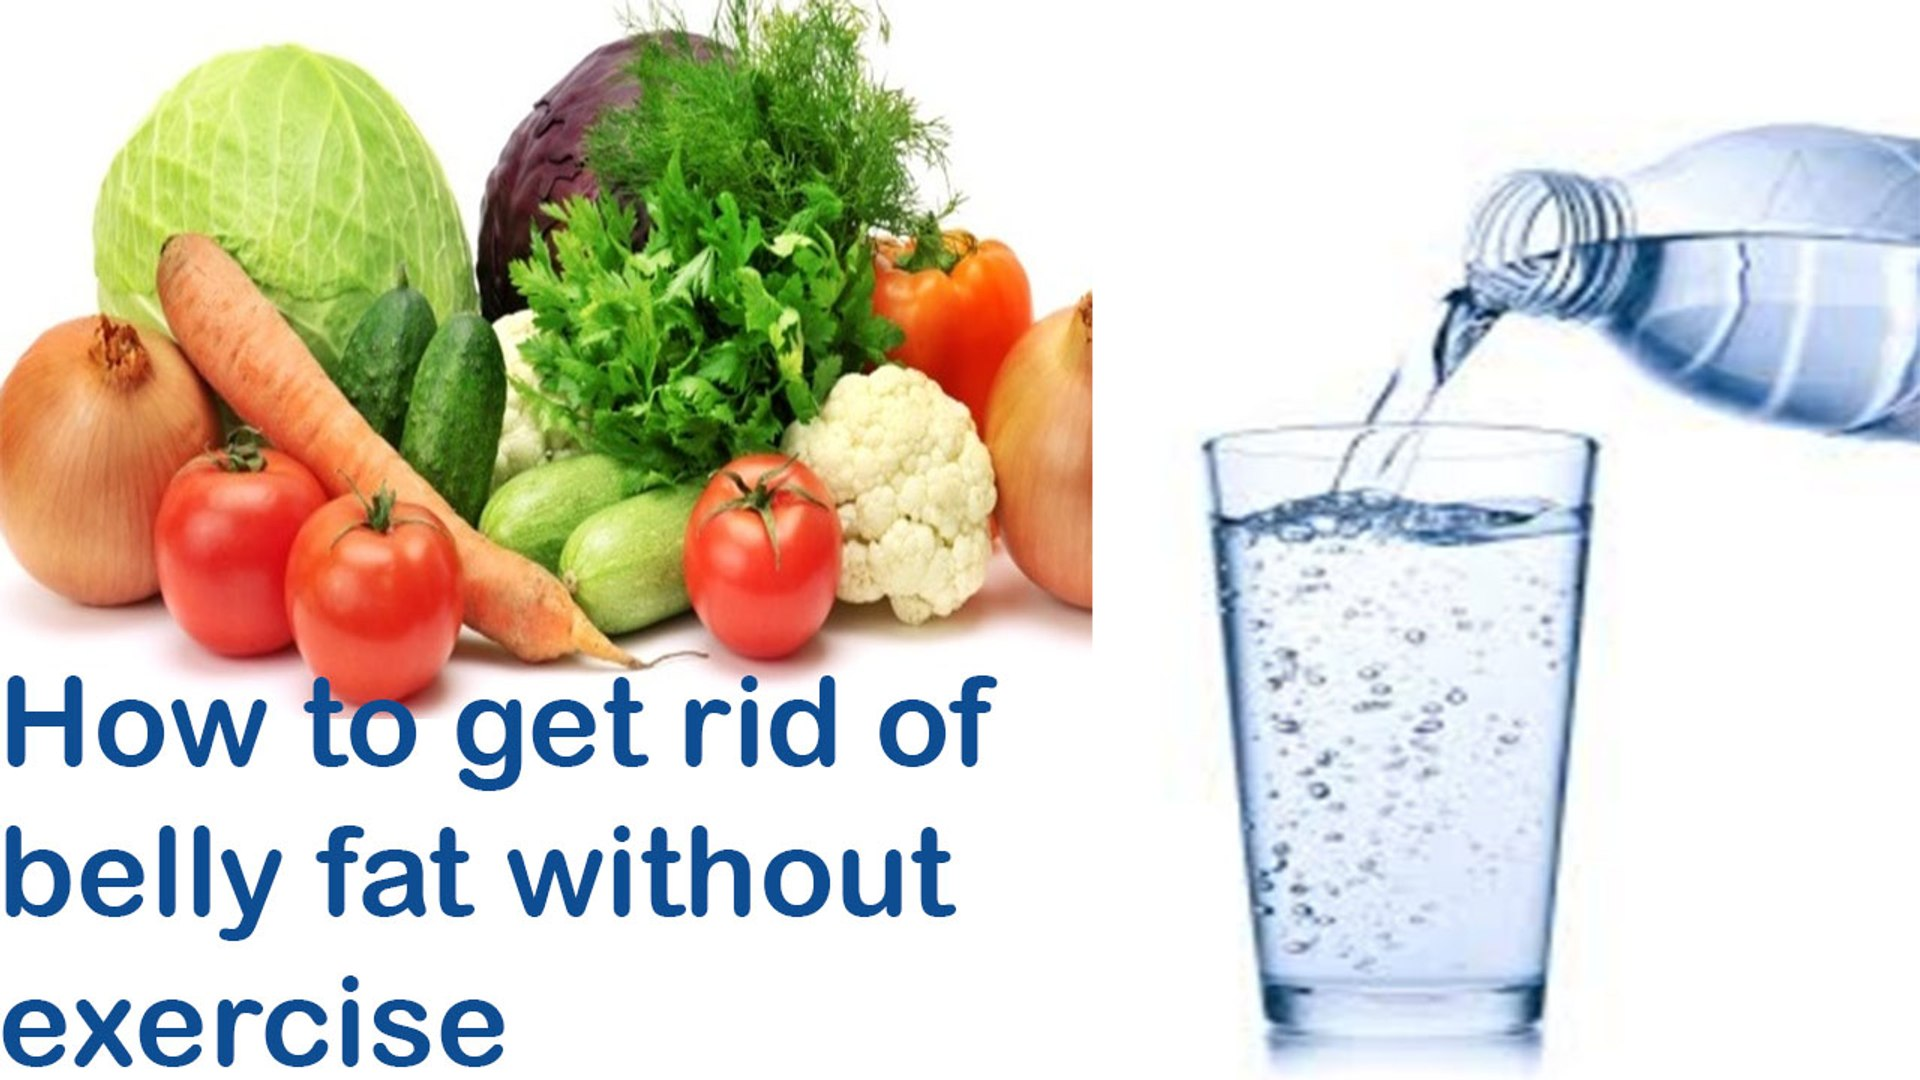 How To Get Rid Of Belly Fat Without Exercise How To Get Rid Of Belly Fat Fast And Easily